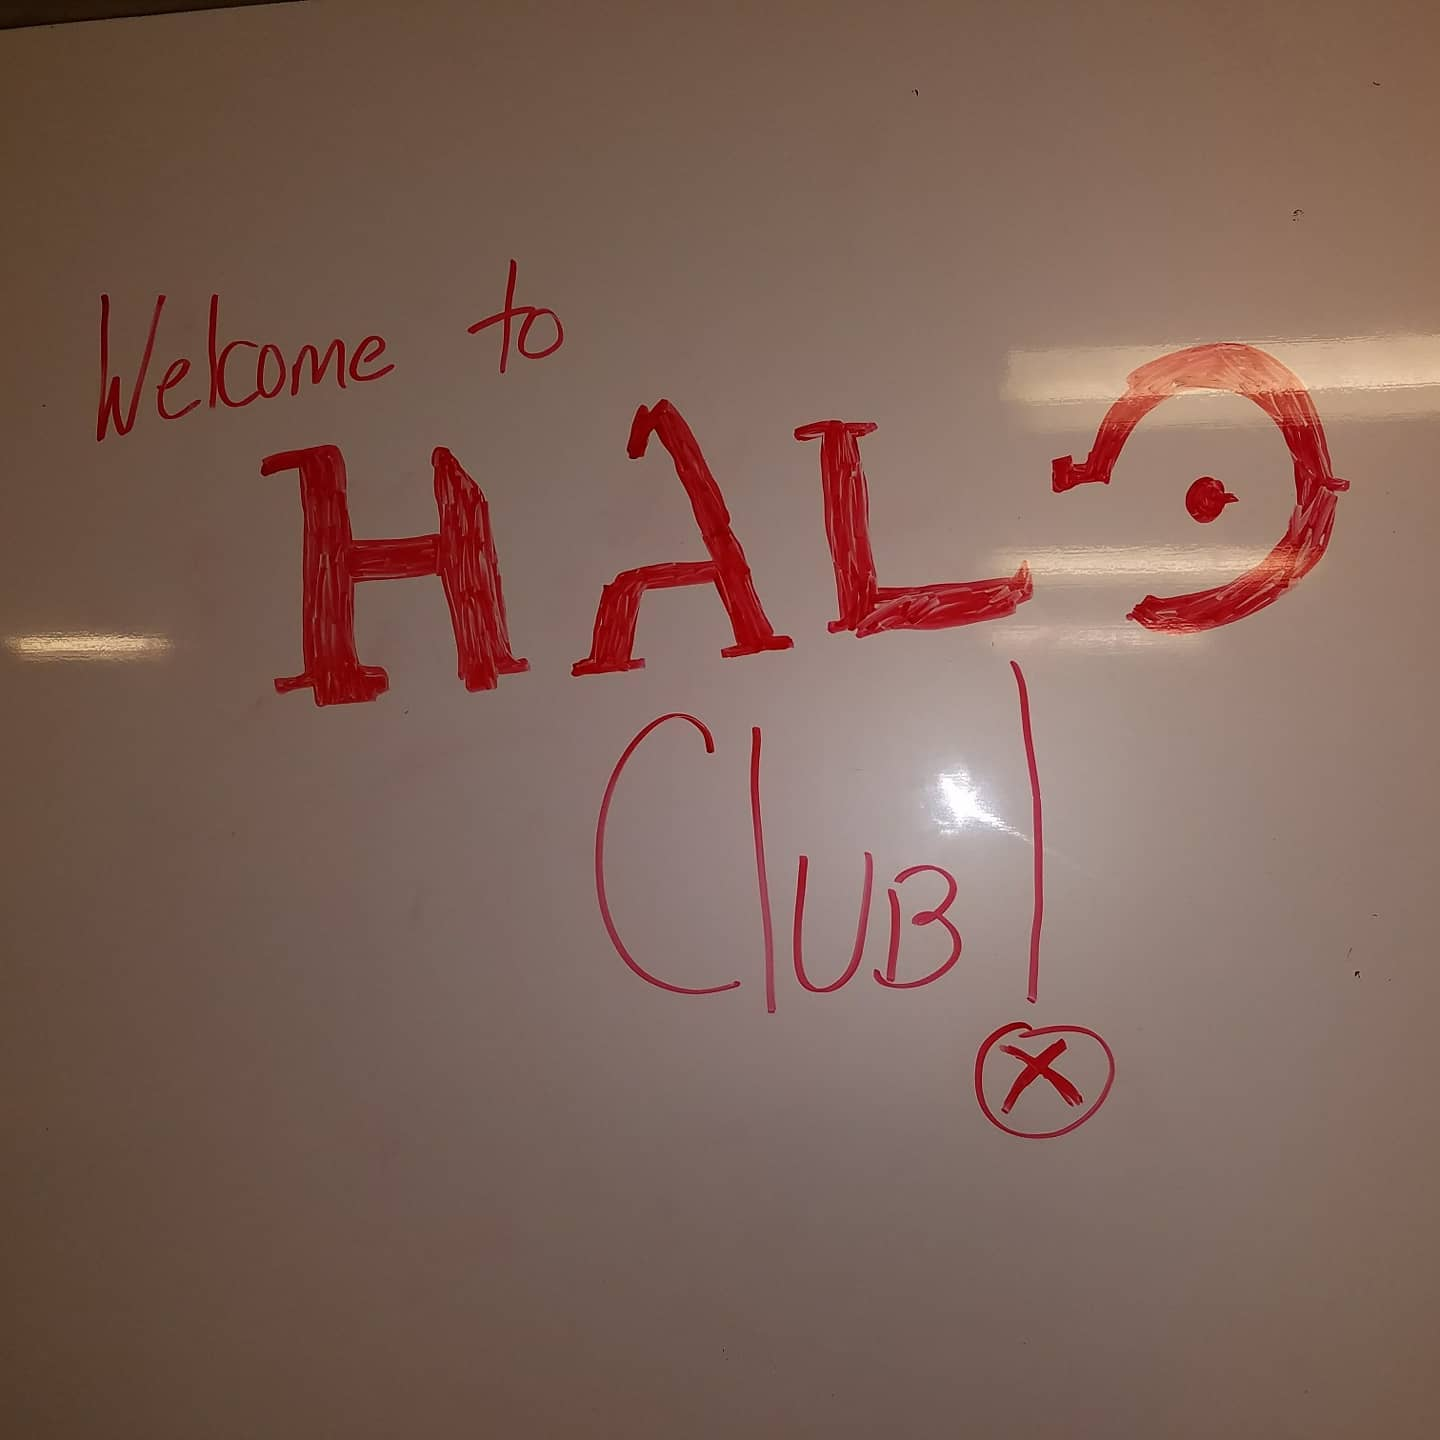 LAN Party Halo Club Whiteboard